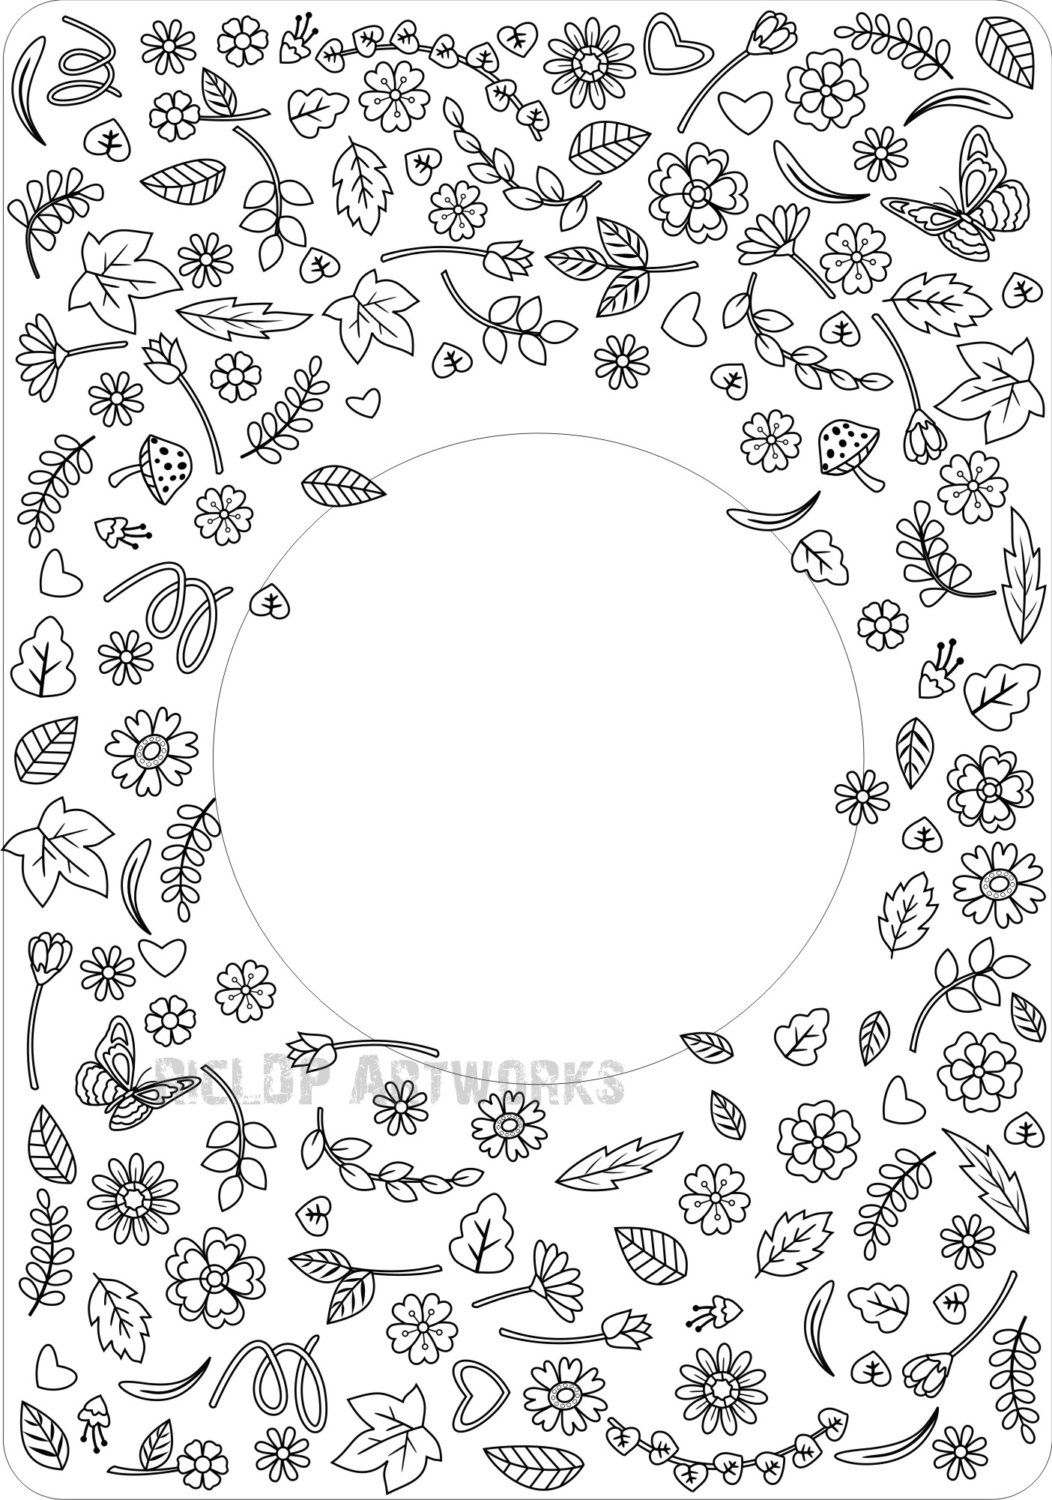 Coloring pages kindness - Printable Throw Kindness Around Like Confetti Coloring Page For Grown Ups